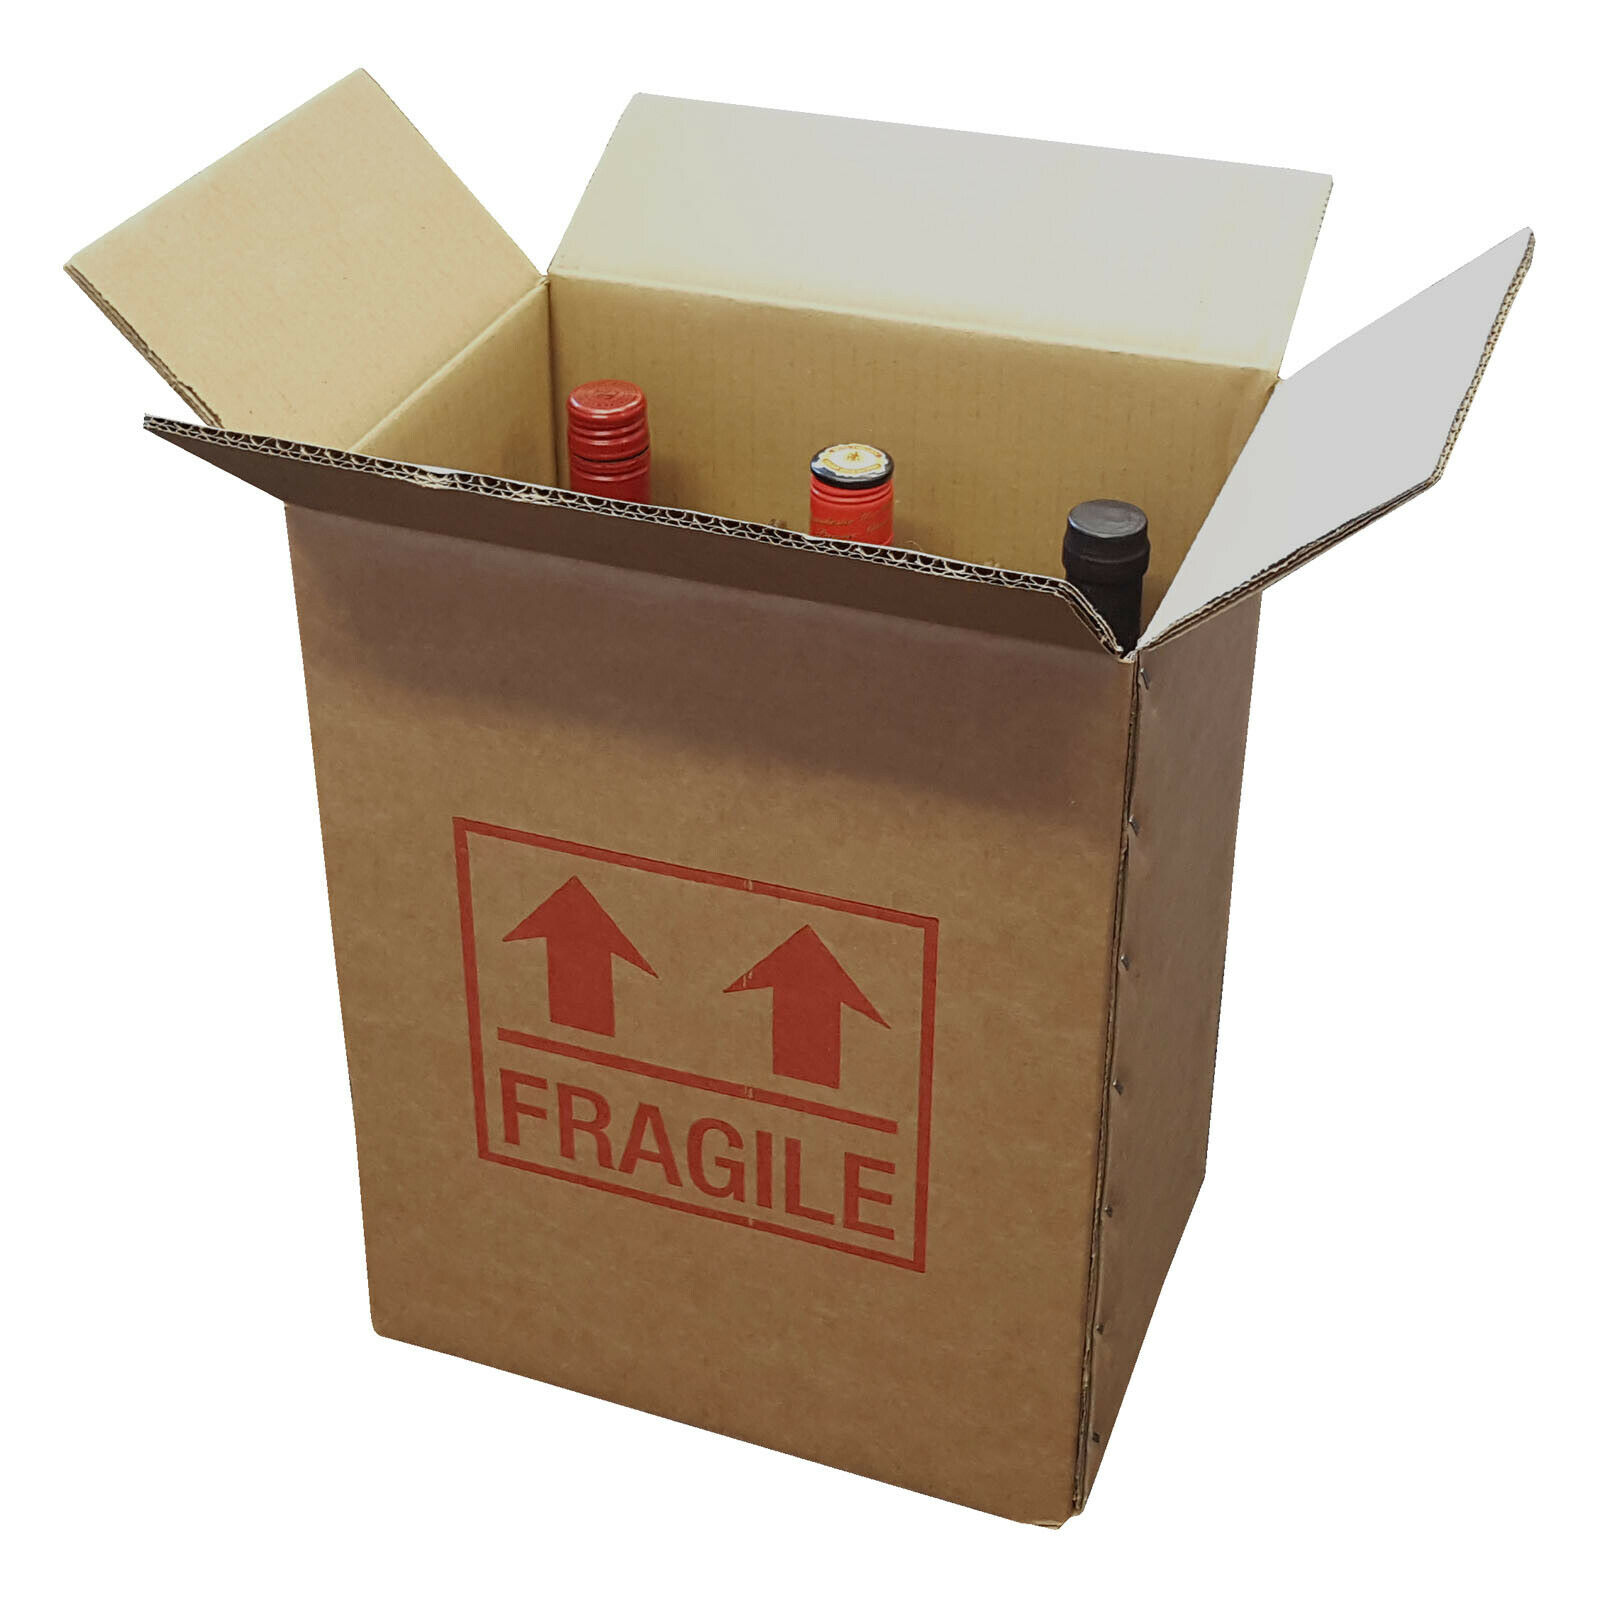 5 Strong Cardboard 6 Bottle Wine Boxes 275mm x 190mm x 335mm Printed Fragile 163603397024 - 5 Strong Cardboard 6 Bottle Wine Boxes 275mm x 190mm x 335mm Printed Fragile